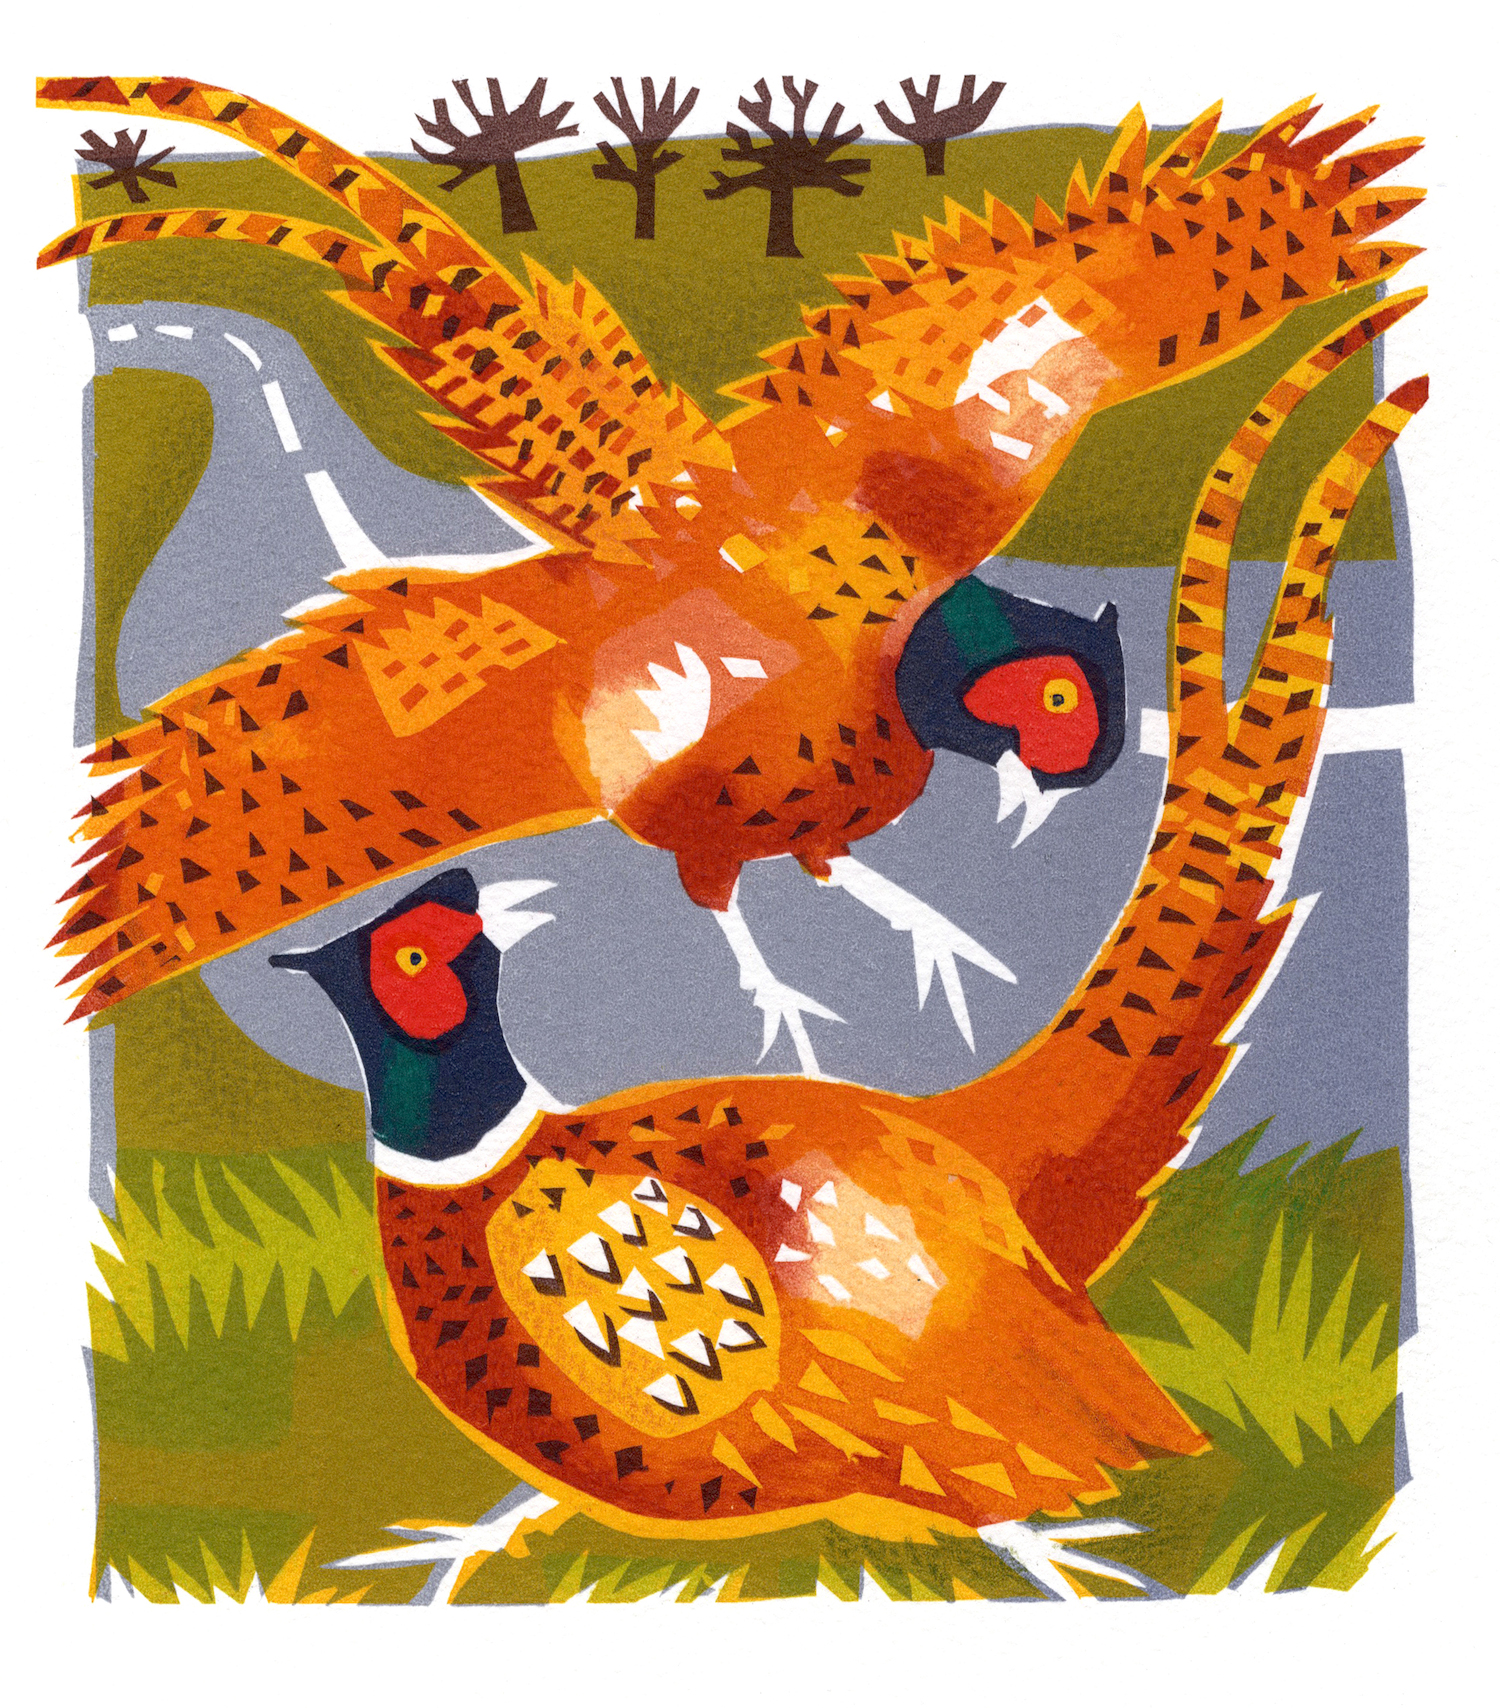 Pheasants   serigraph   30 x 30 cm  £280 framed, £210 unframed